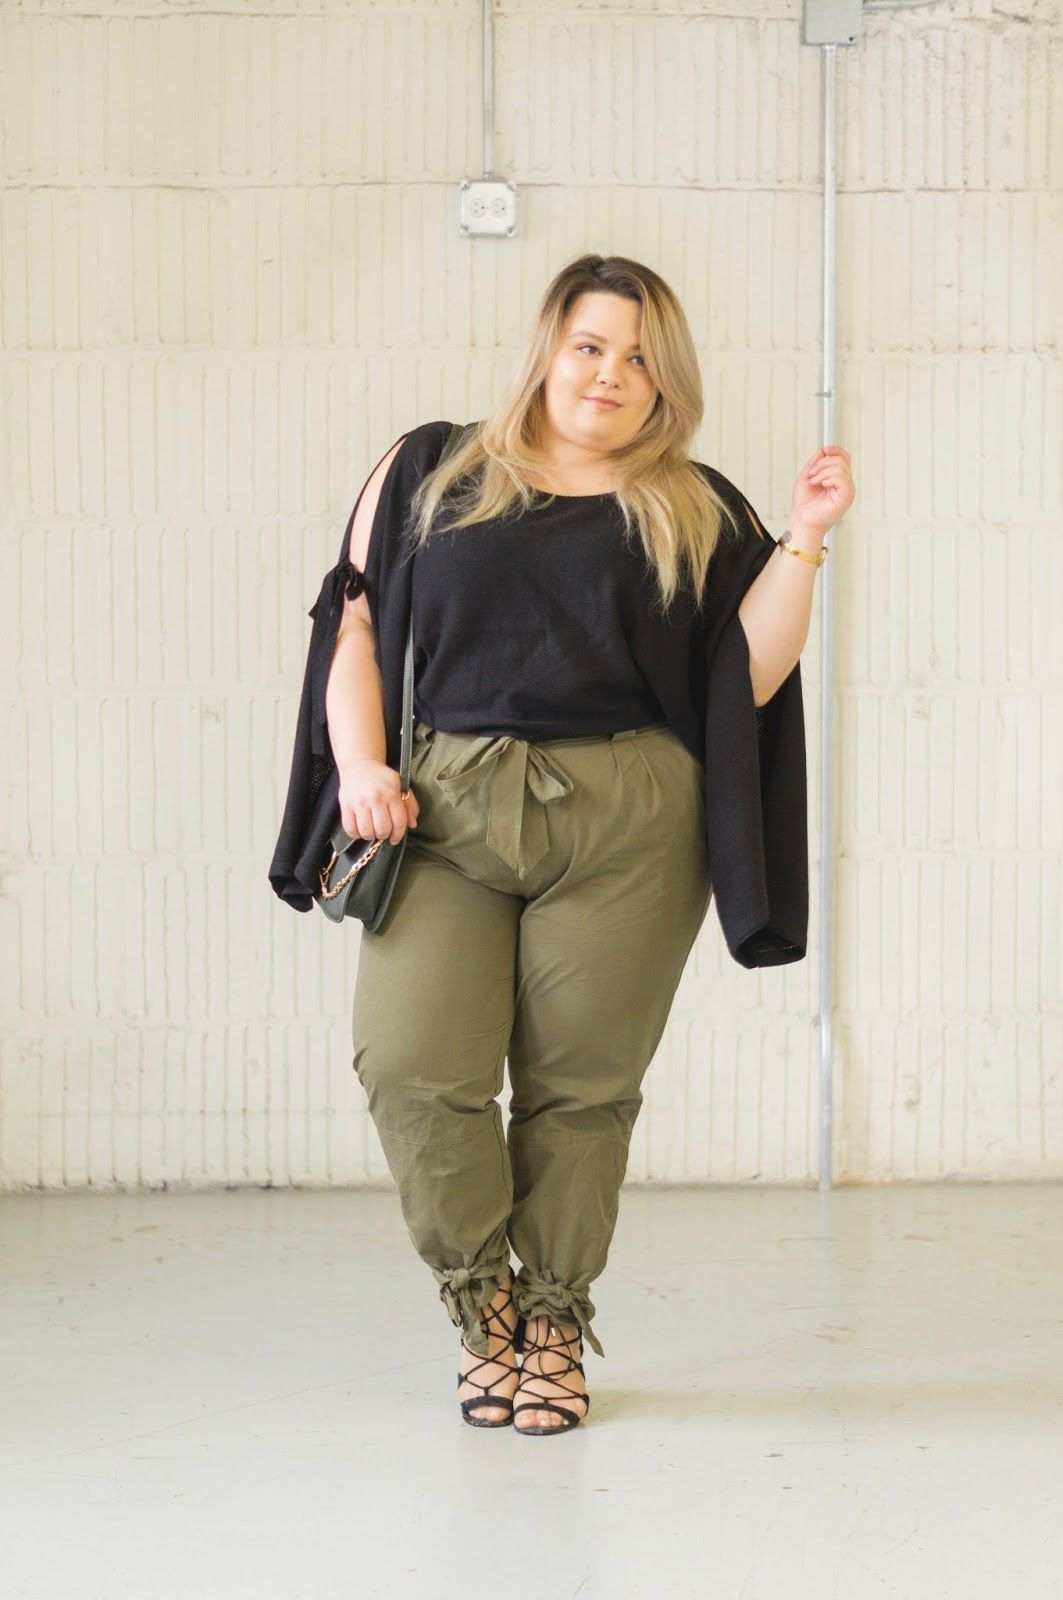 149baa0df75d Chicago Plus Size Fashion Blogger Natalie Craig reviews Fashion Nova  Curve's Going on an Adventure Green Cargo Pants and Arosa Tie Sleeve  Sweater.